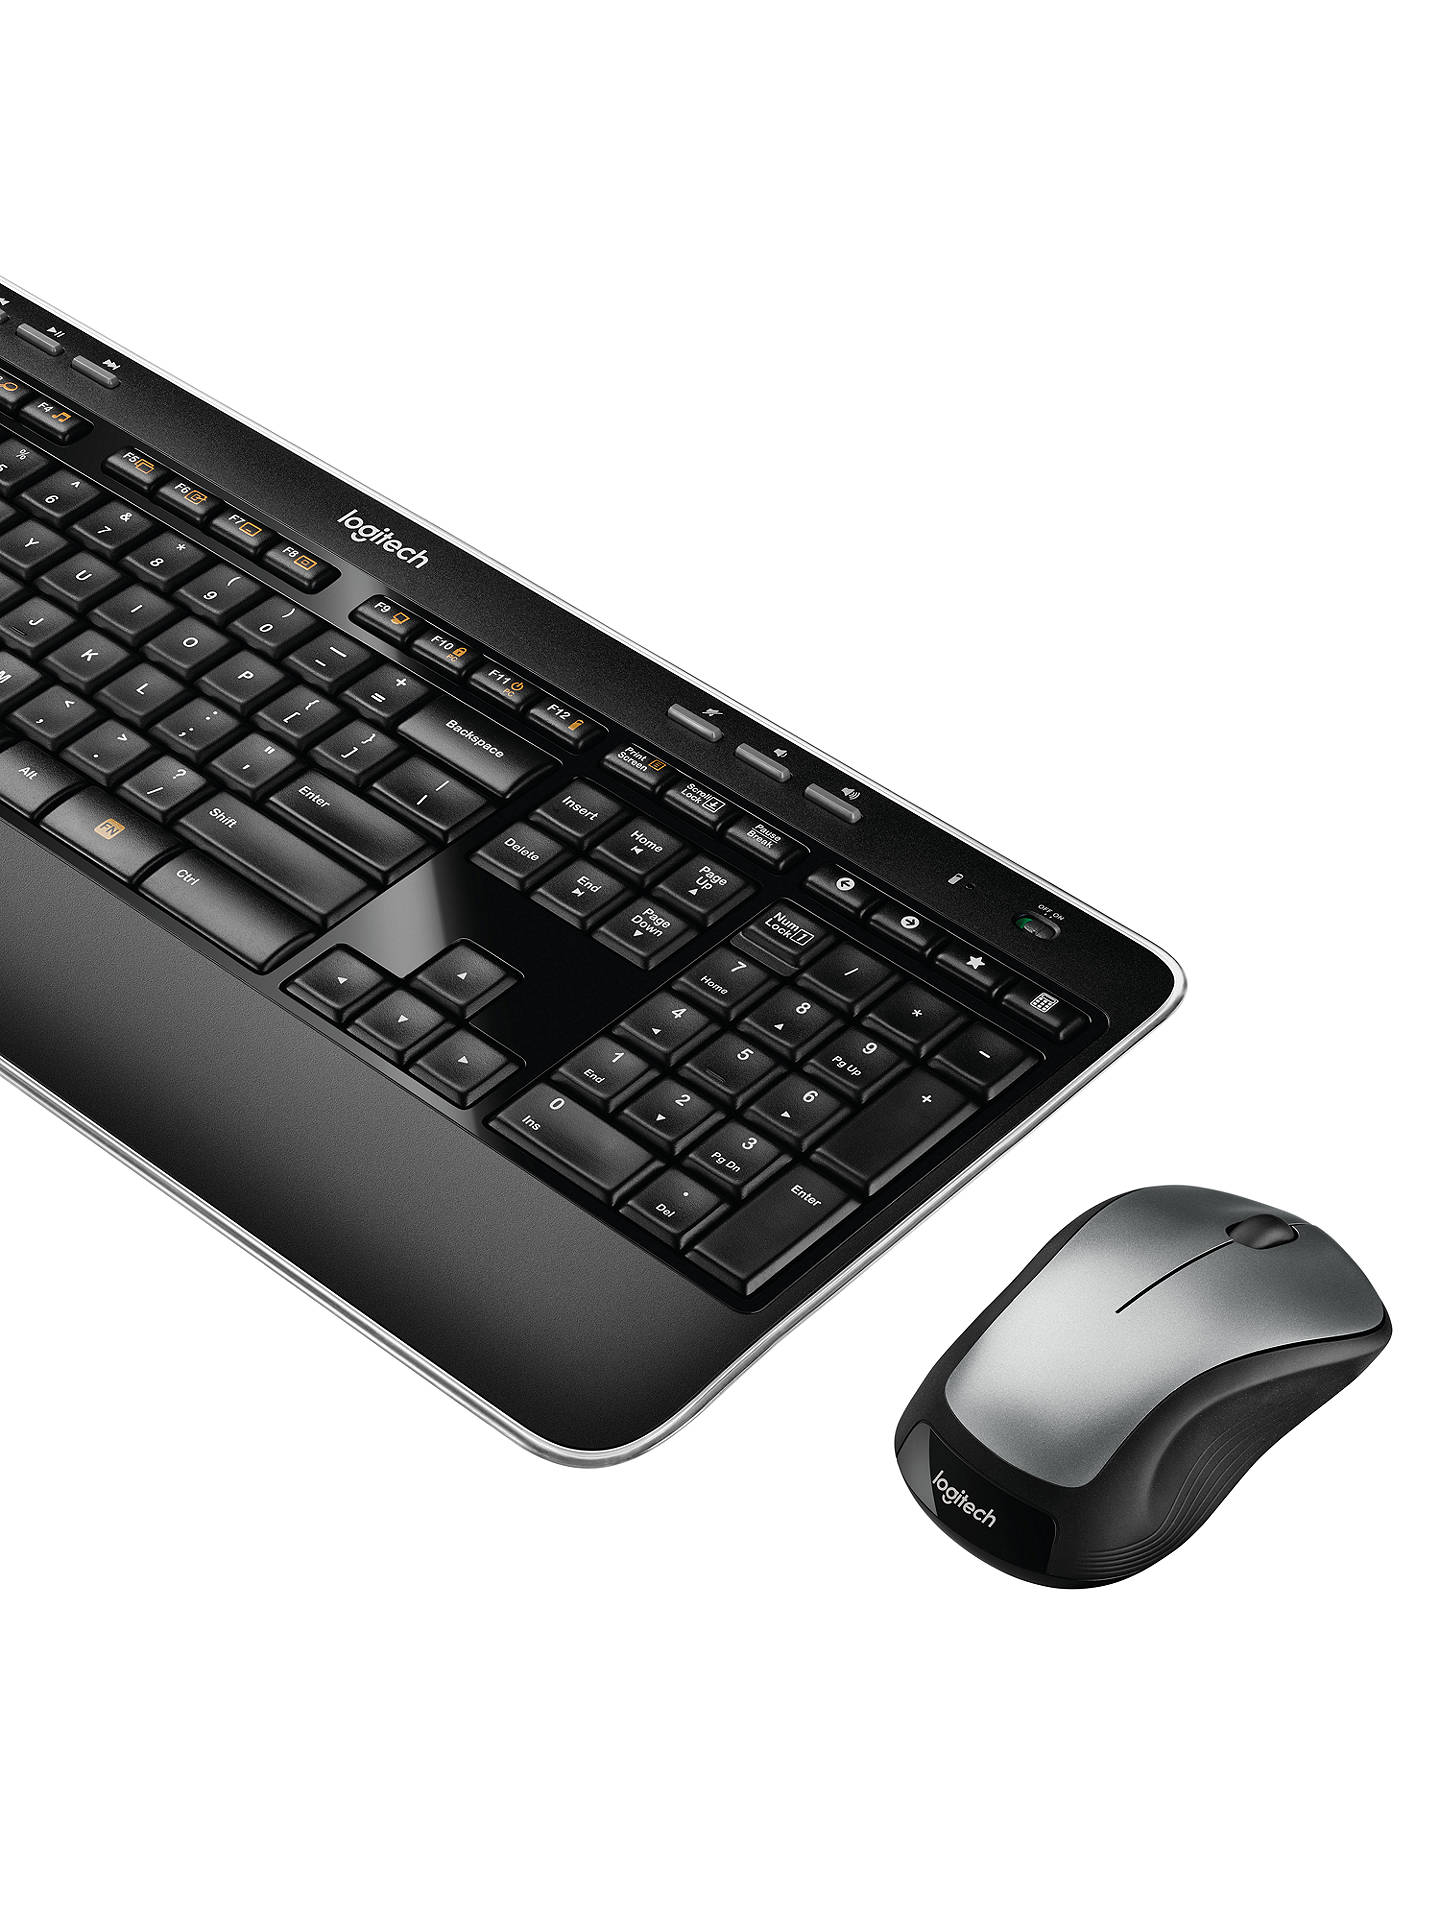 BuyLogitech MK520 Wireless Keyboard and Mouse Combo Online at johnlewis.com